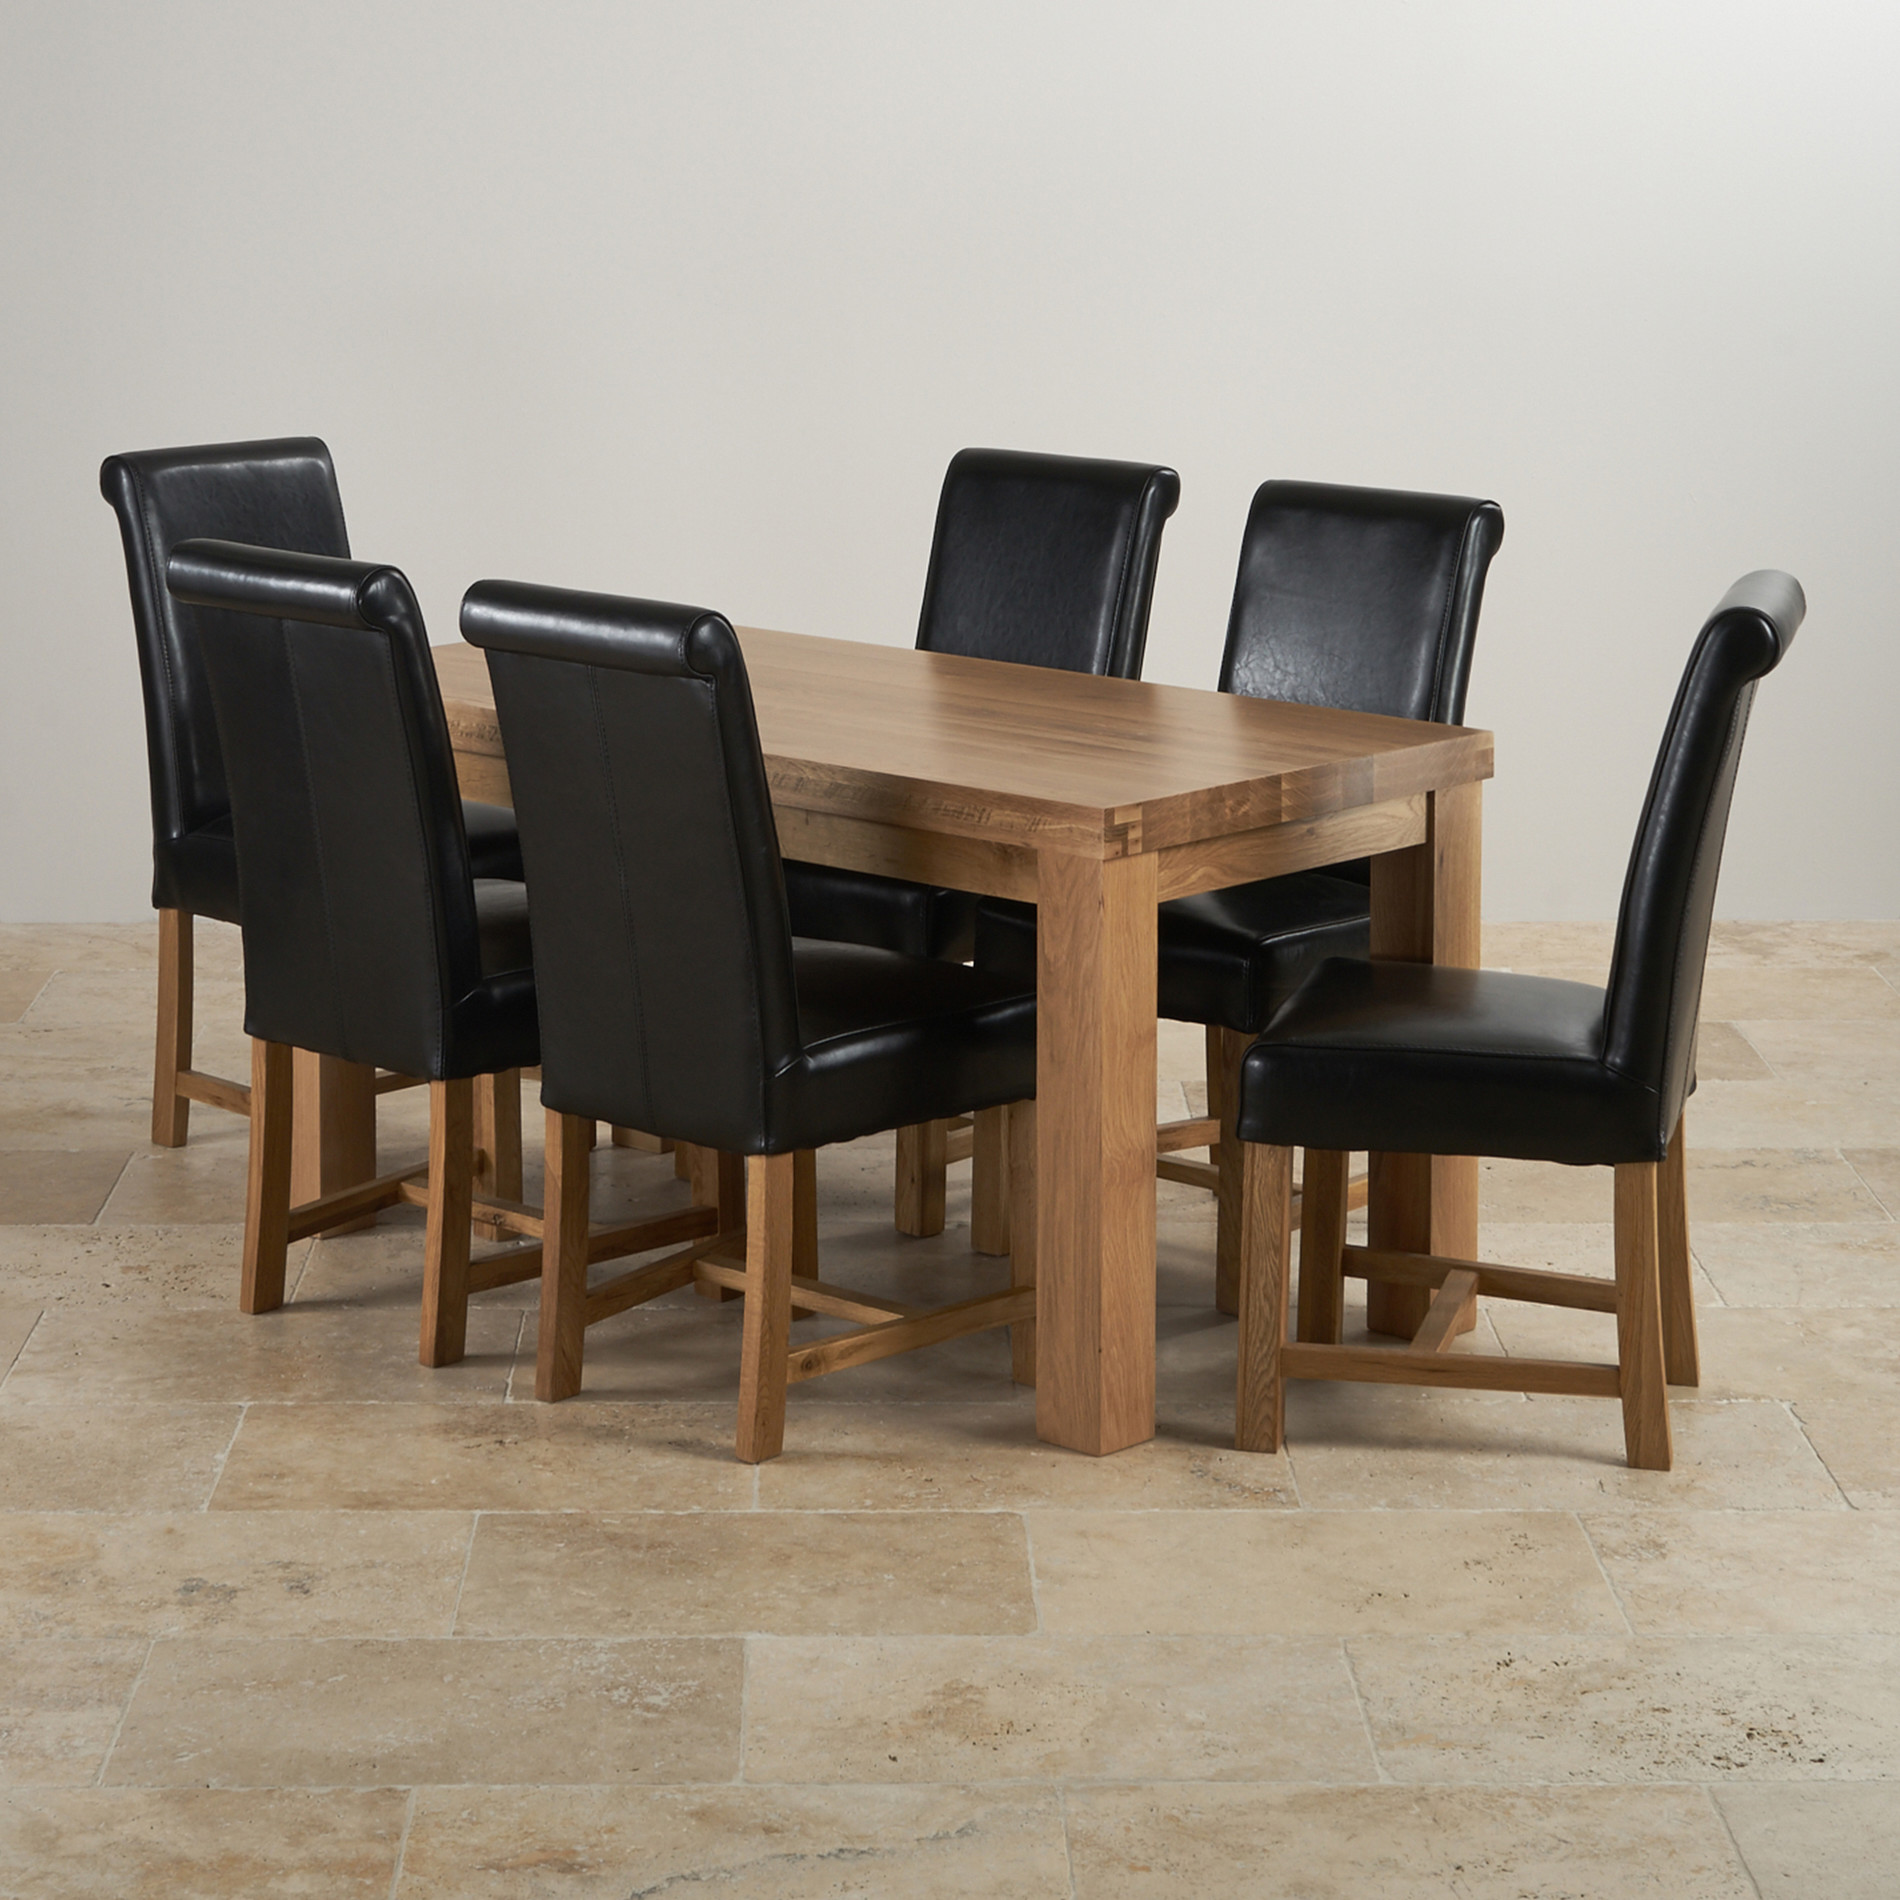 Fresco dining set 5ft dining table in oak 6 black leather chairs for Black dining sets with 6 chairs